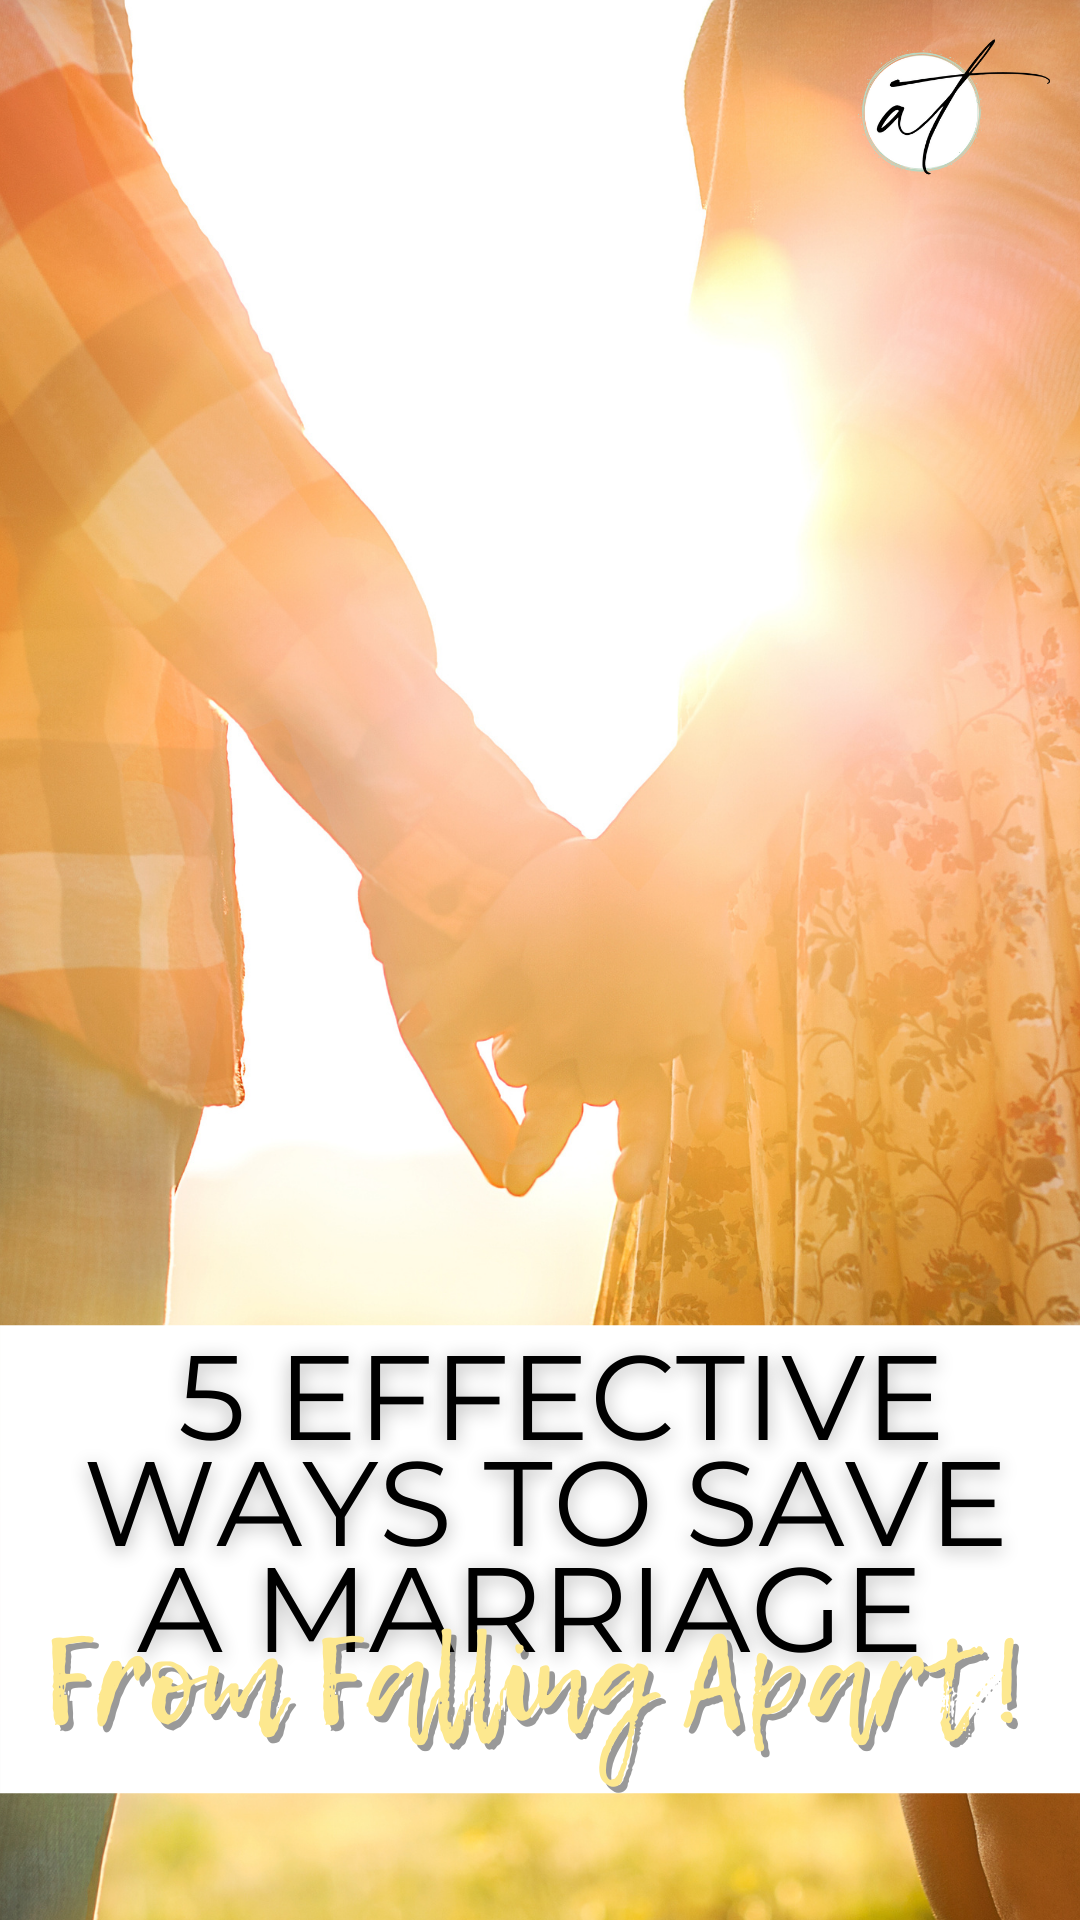 Marriage can be hard and it may seem like your marriage is falling apart here are effective ways you can save your marriage!